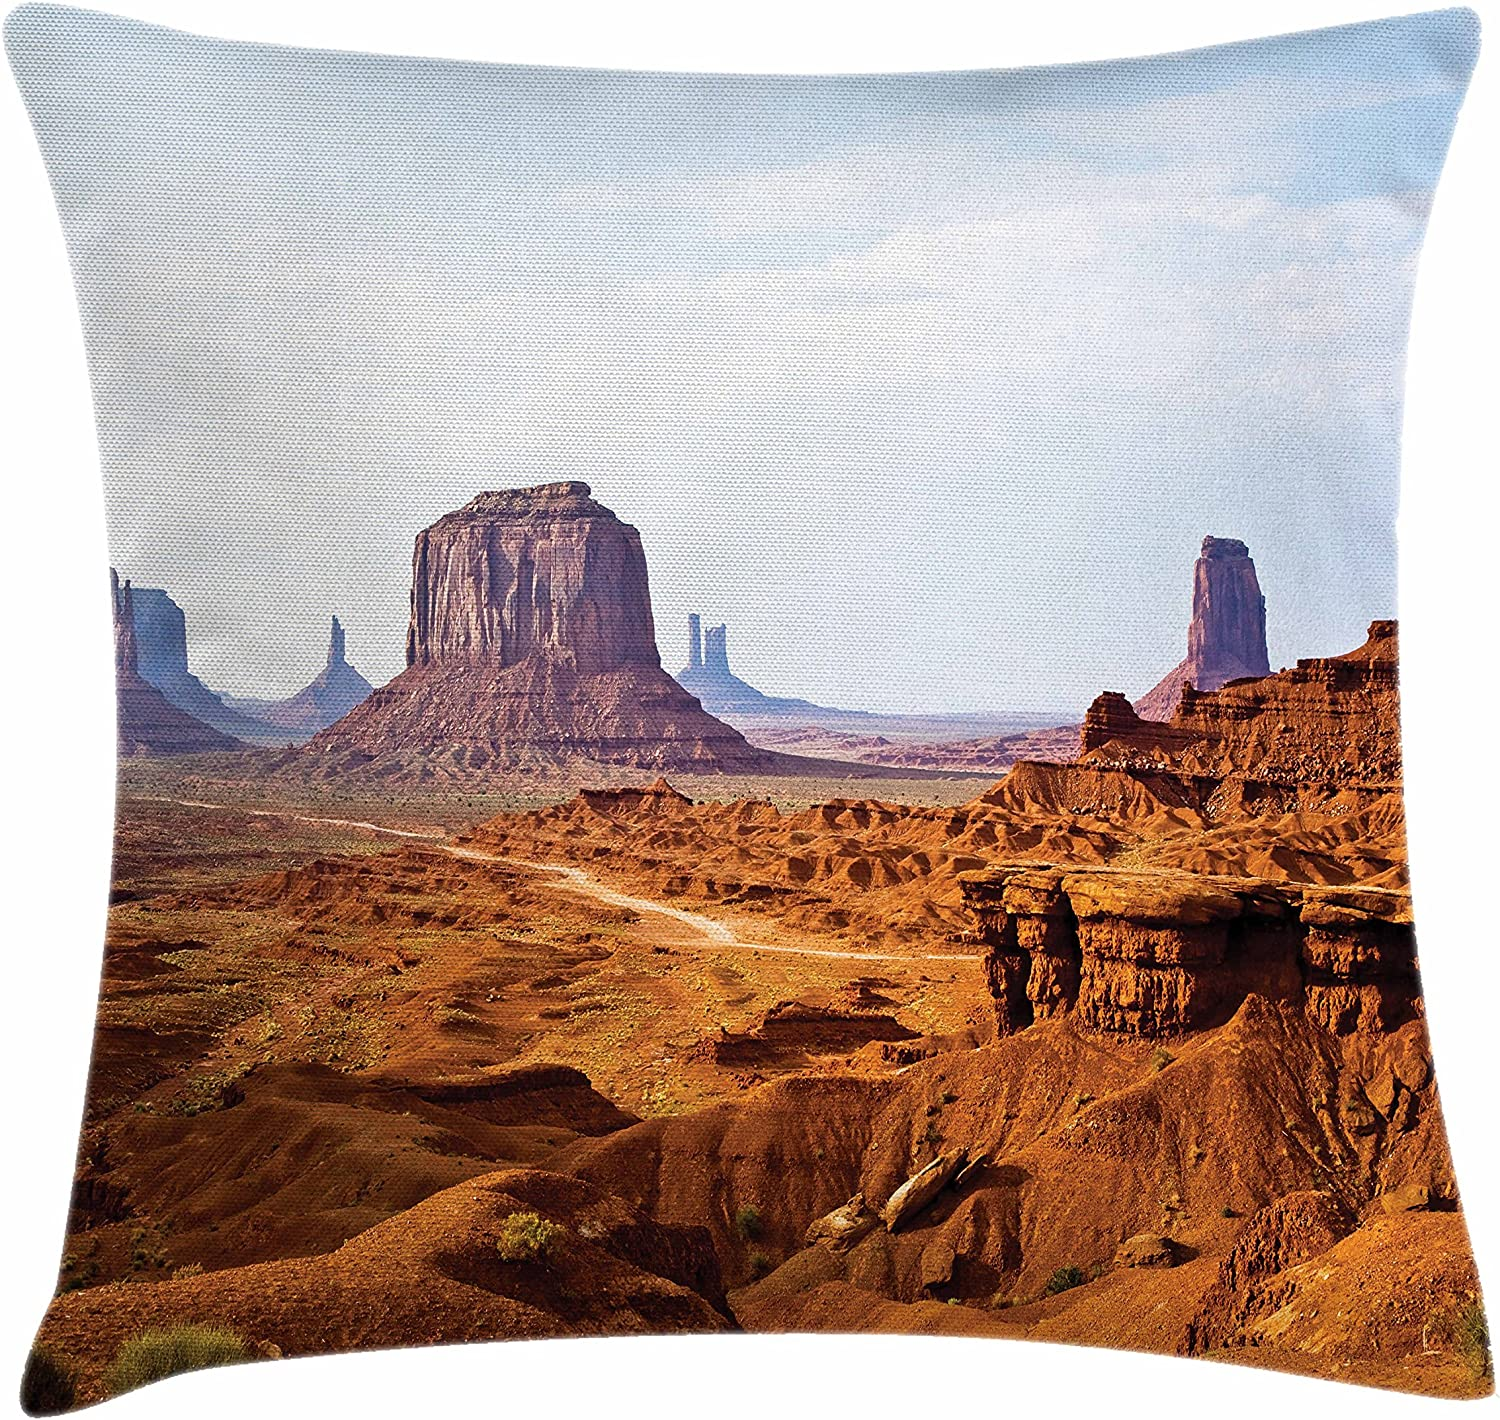 Amazon Com Ambesonne Desert Throw Pillow Cushion Cover Monument Valley View From John Fords Point Merritt Butte Sandstone Image Decorative Square Accent Pillow Case 18 X 18 Baby Blue Mauve Amber Home